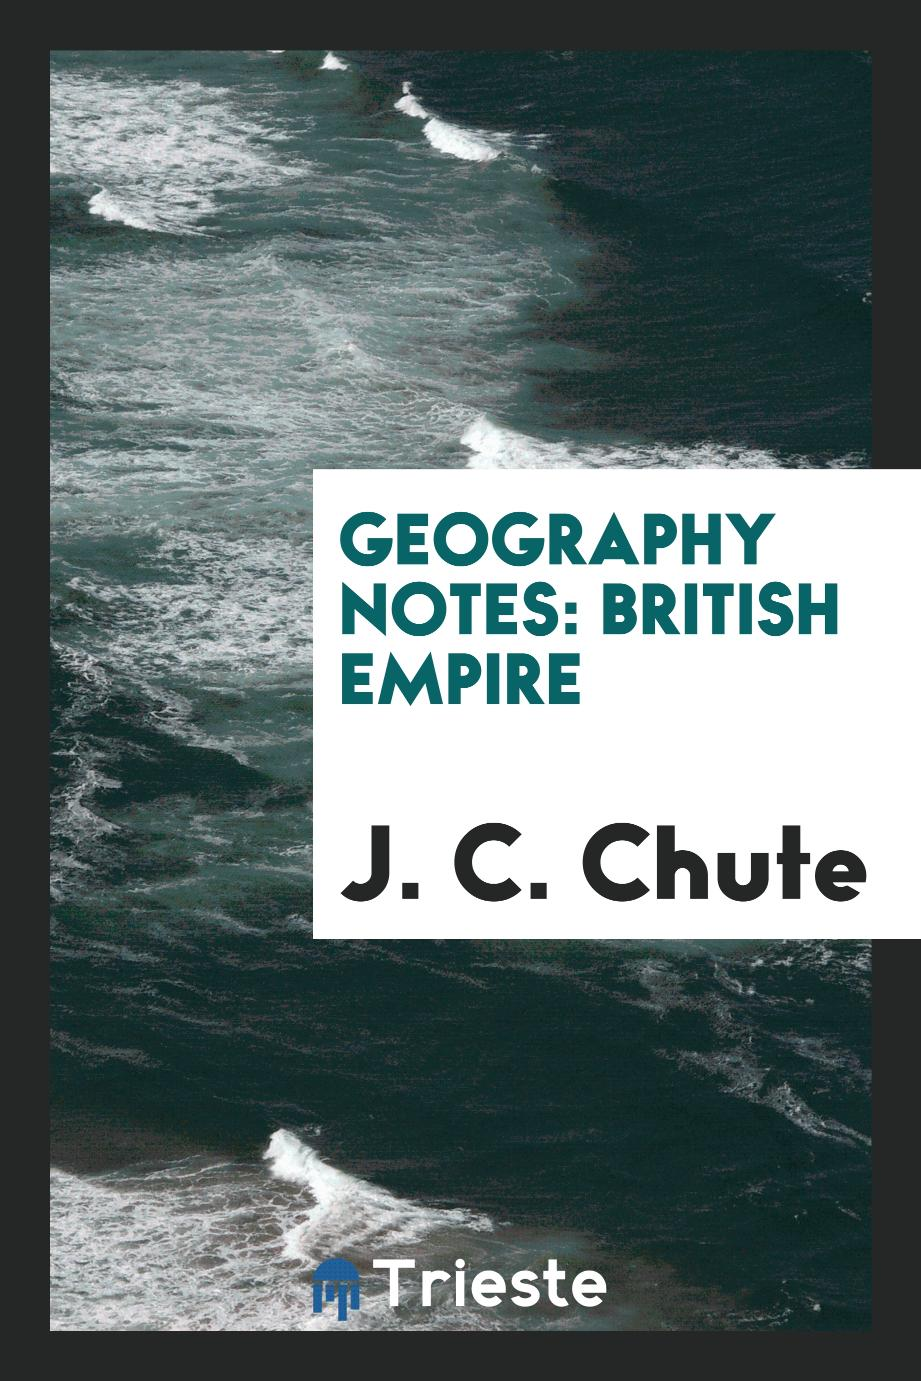 Geography Notes: British Empire